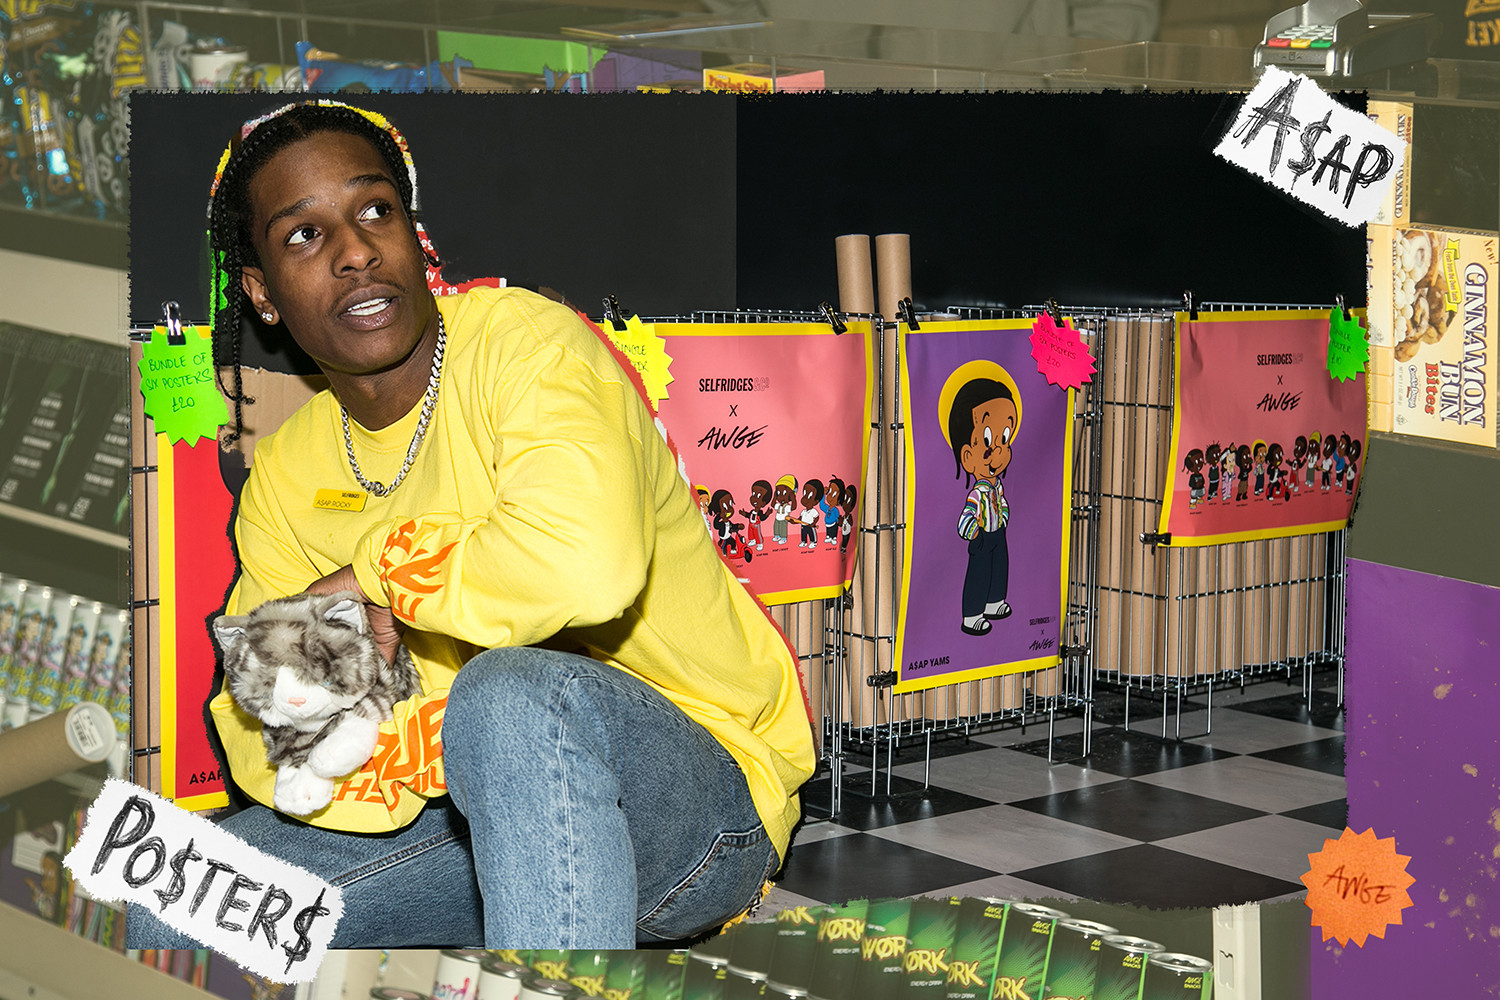 A$AP Rocky AWGE Selfridges London Bodega A$AP Mob ASAP GUE$$